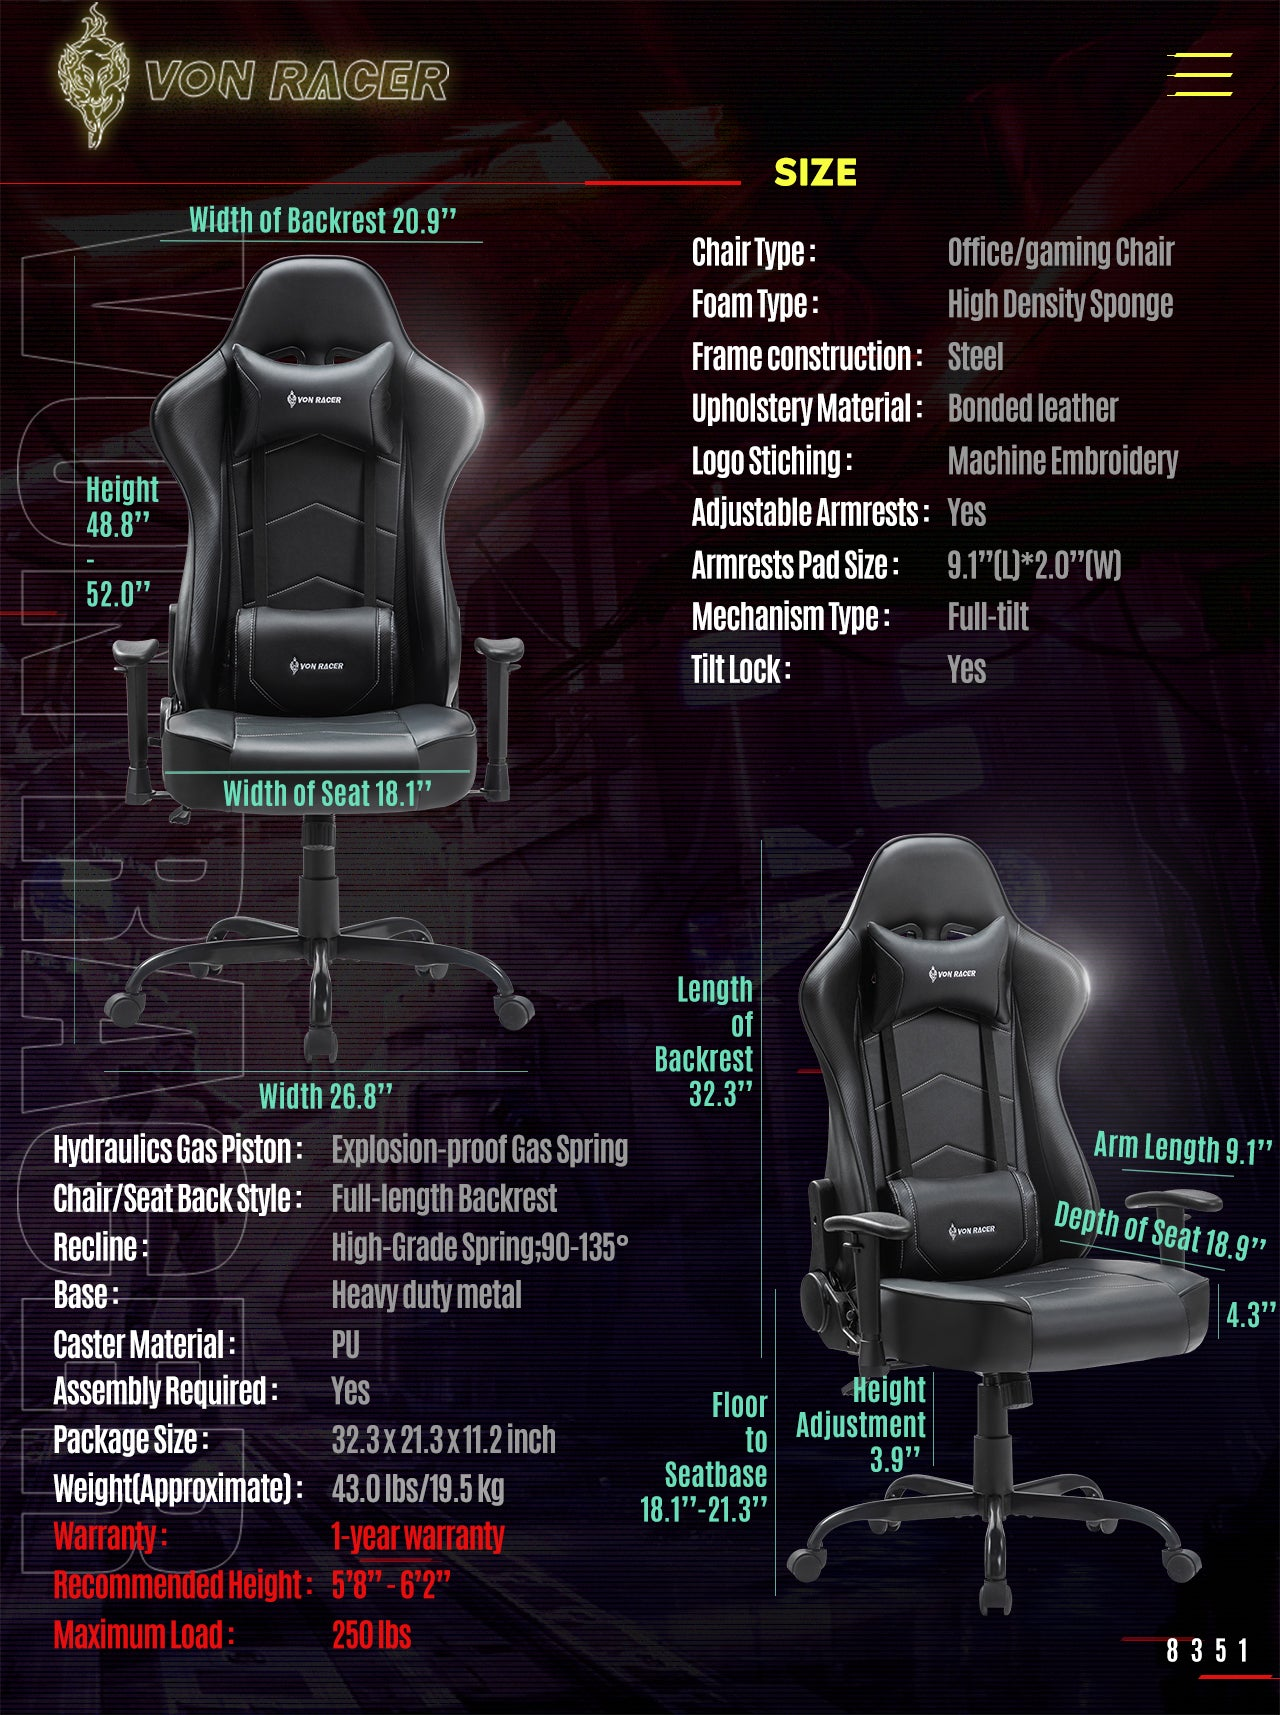 VON RACER Gaming Chair ADDAX Series Ergonomic black gaming desk chair specification